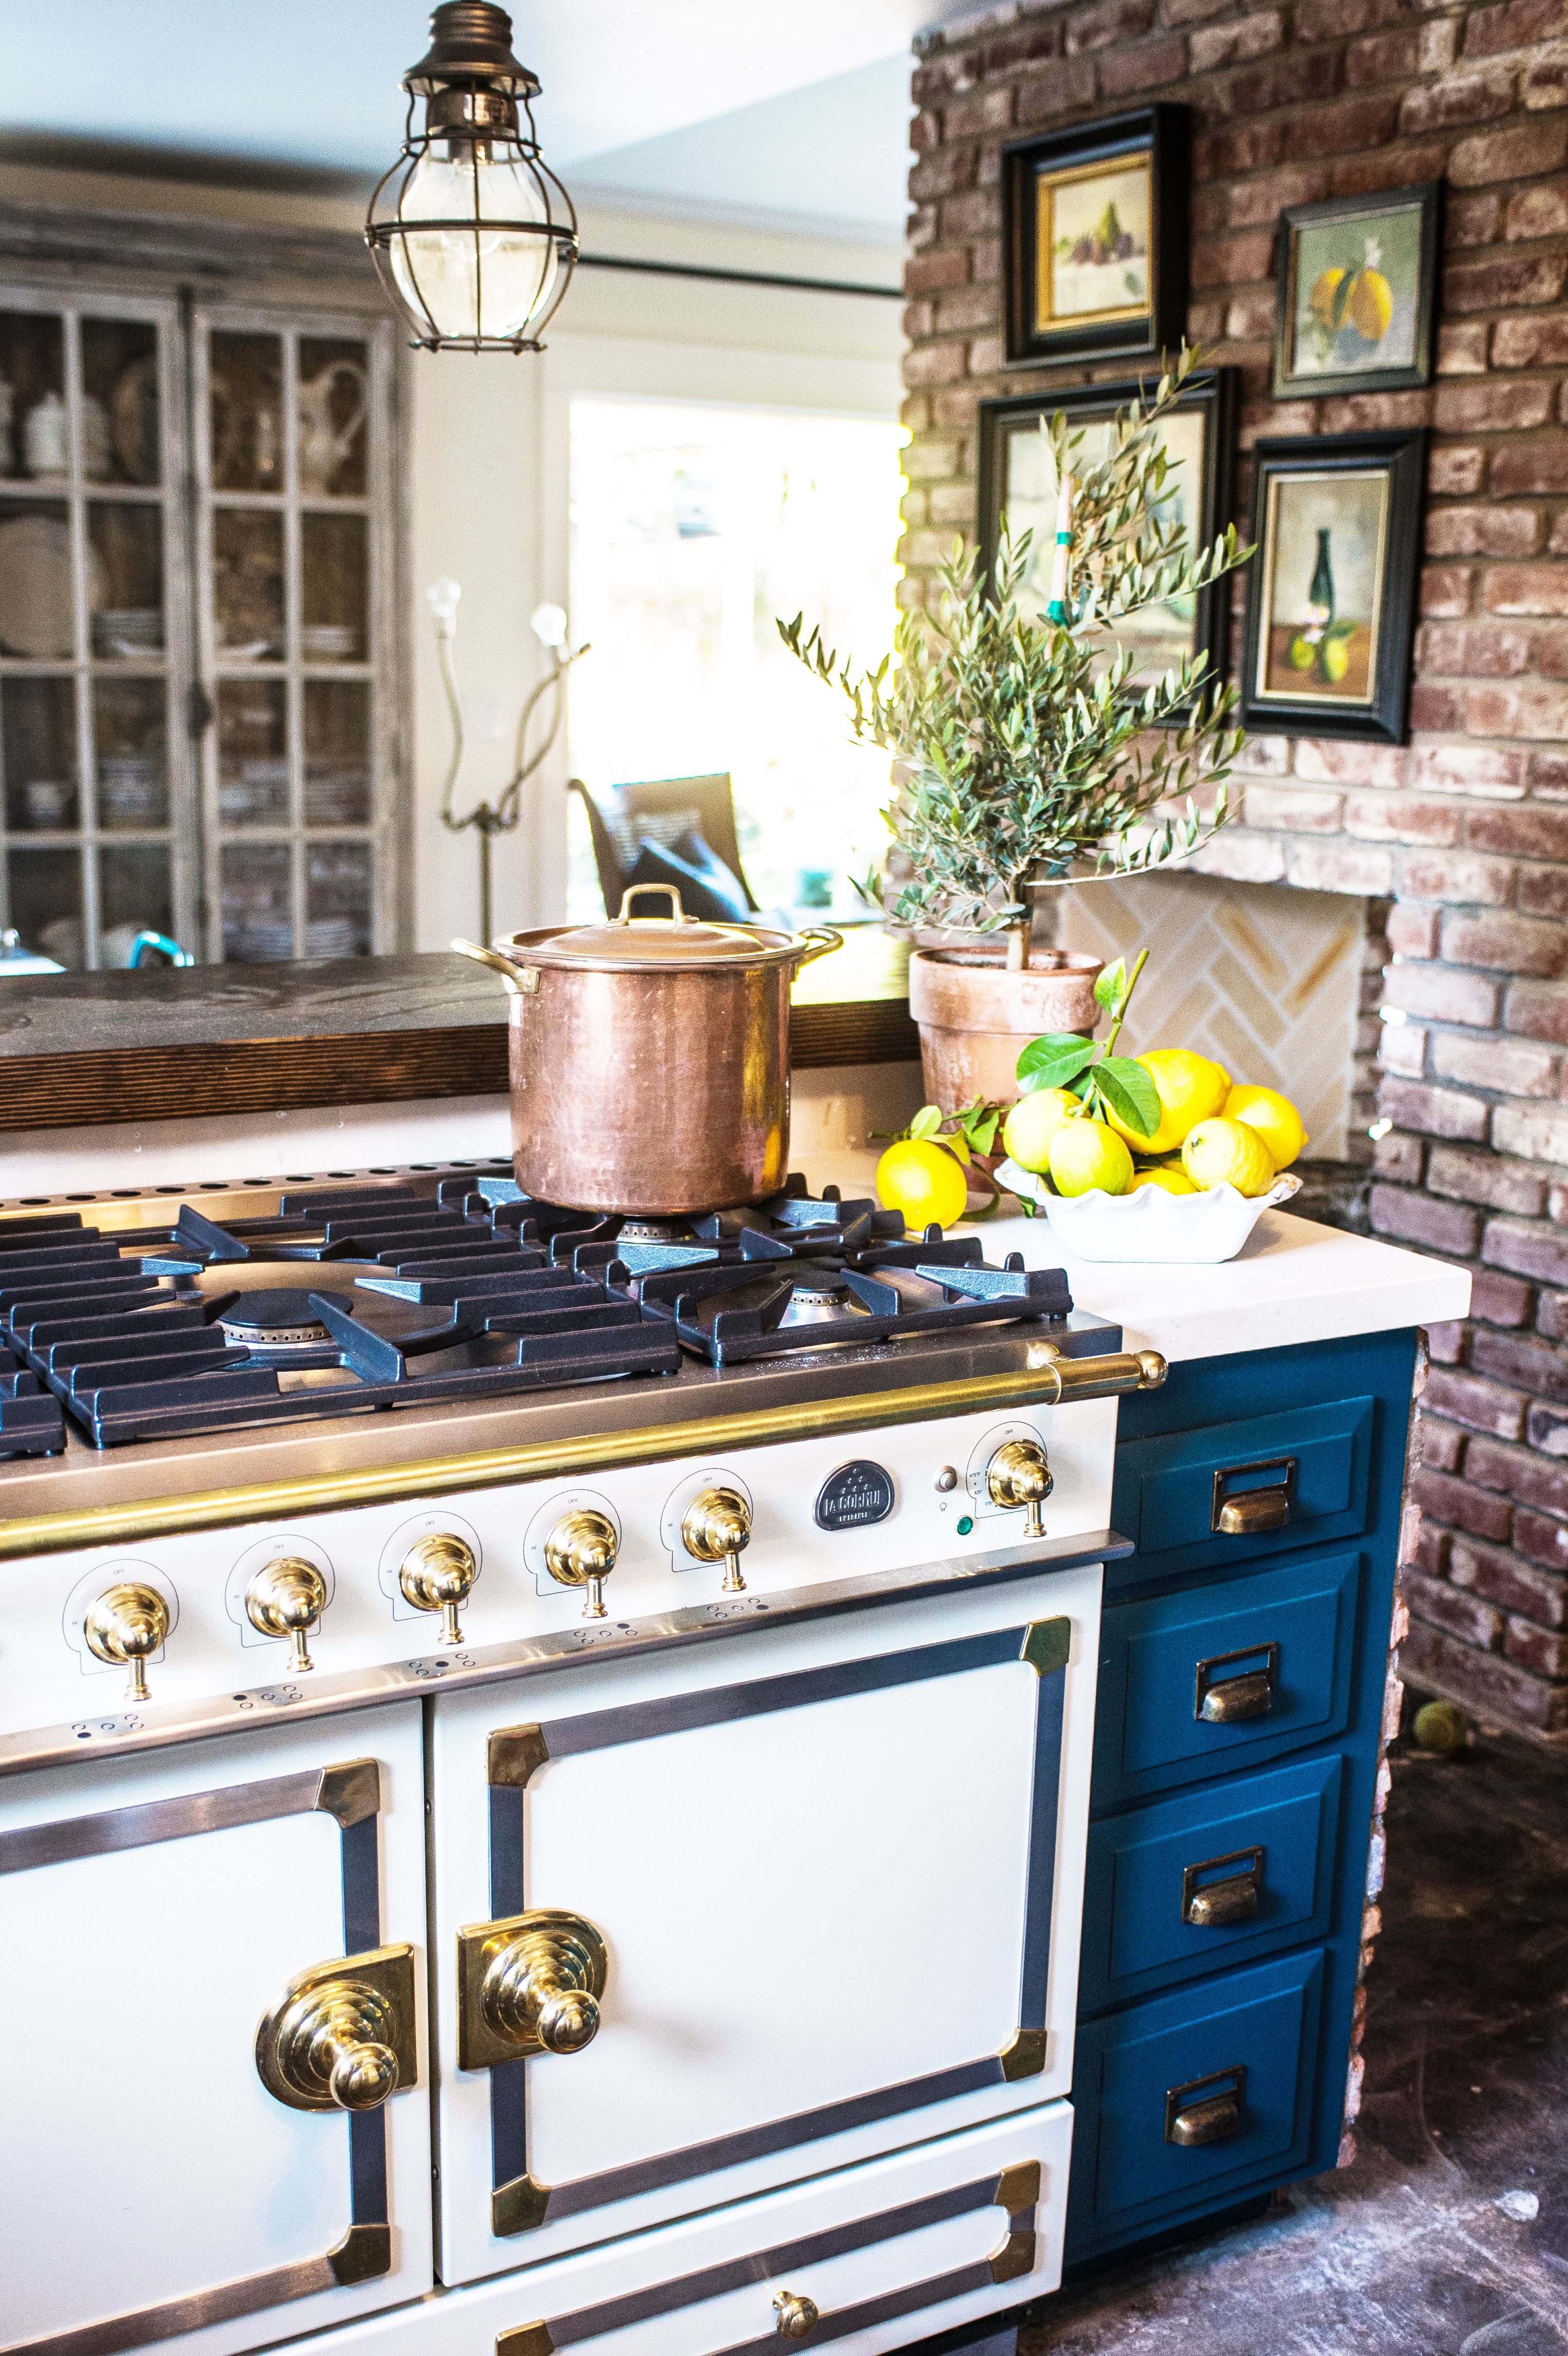 Inside luxury kitchens - Inside A Rustic Home With An Incredible Garden